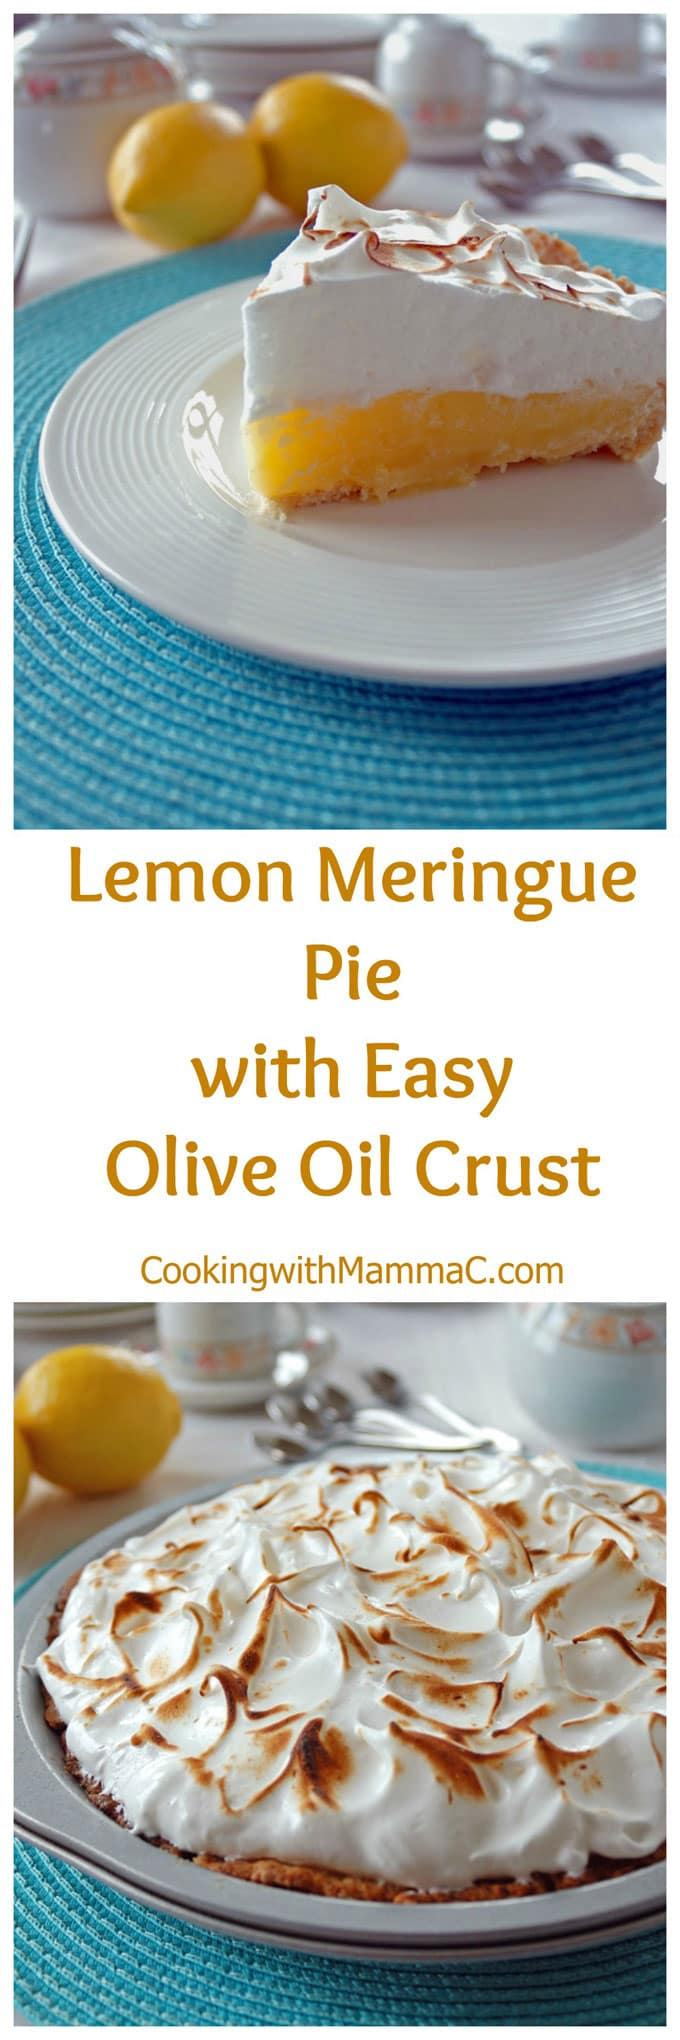 Lemon Meringue Pie with Easy Olive Oil Crust is the pie of my dreams! It's perfectly sweet-tart with a nice lemon flavor and a delicious, no-roll crust!